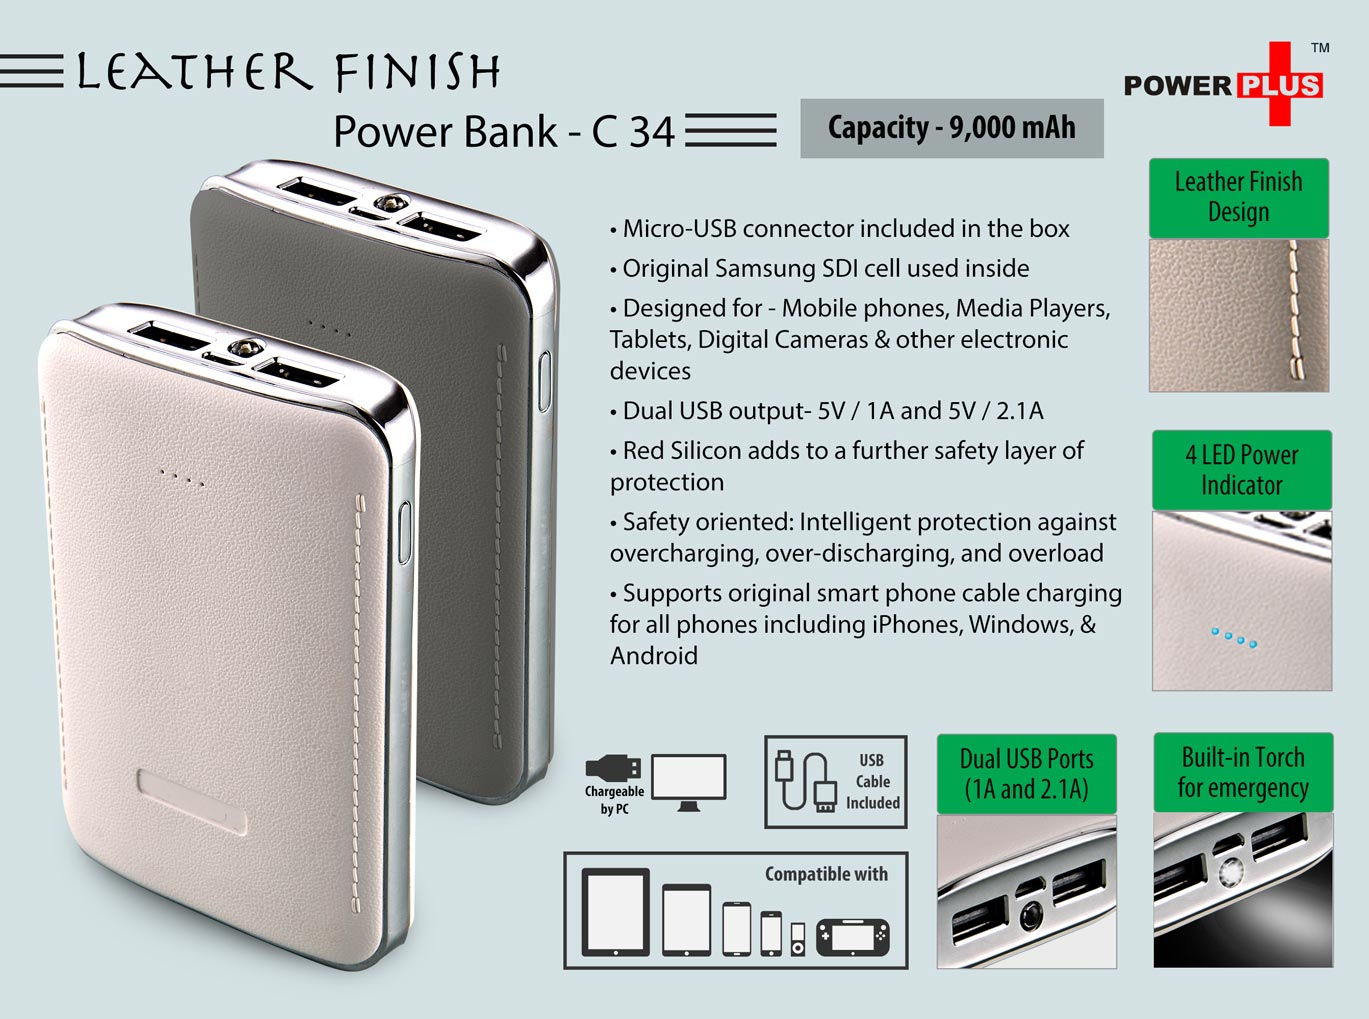 C34- Leather Finish Power Bank (Capacity - 9,000 mAh)